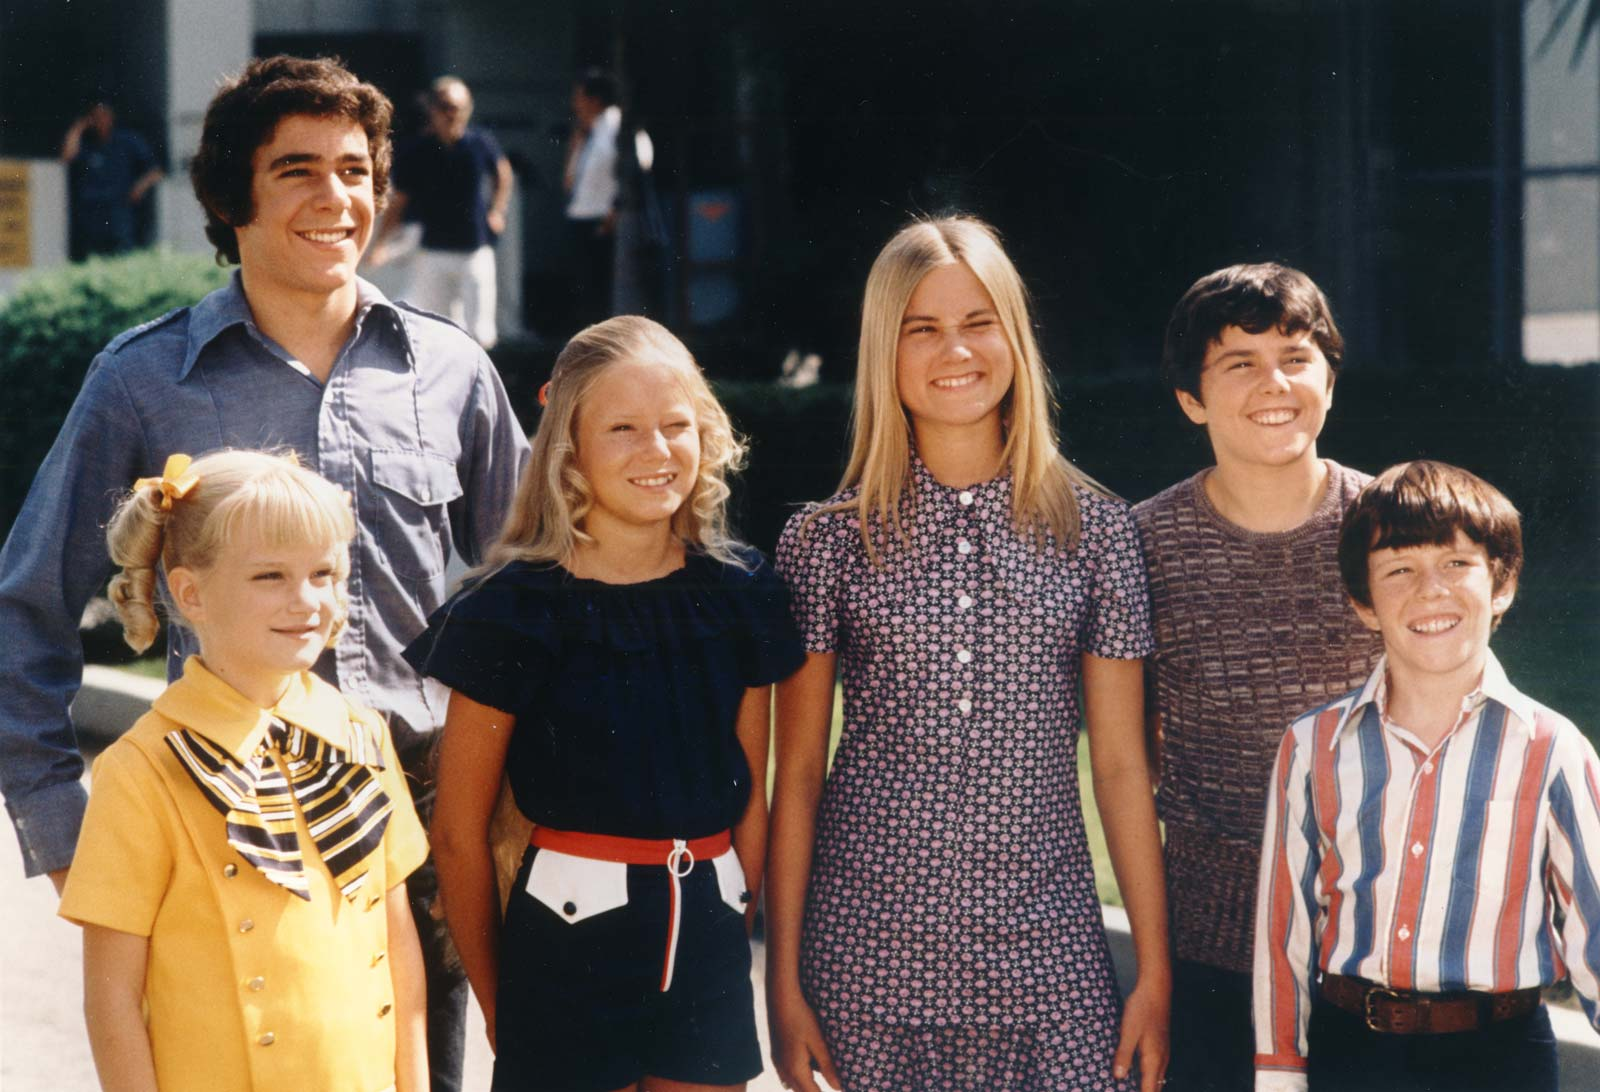 the cast of the brady bunch